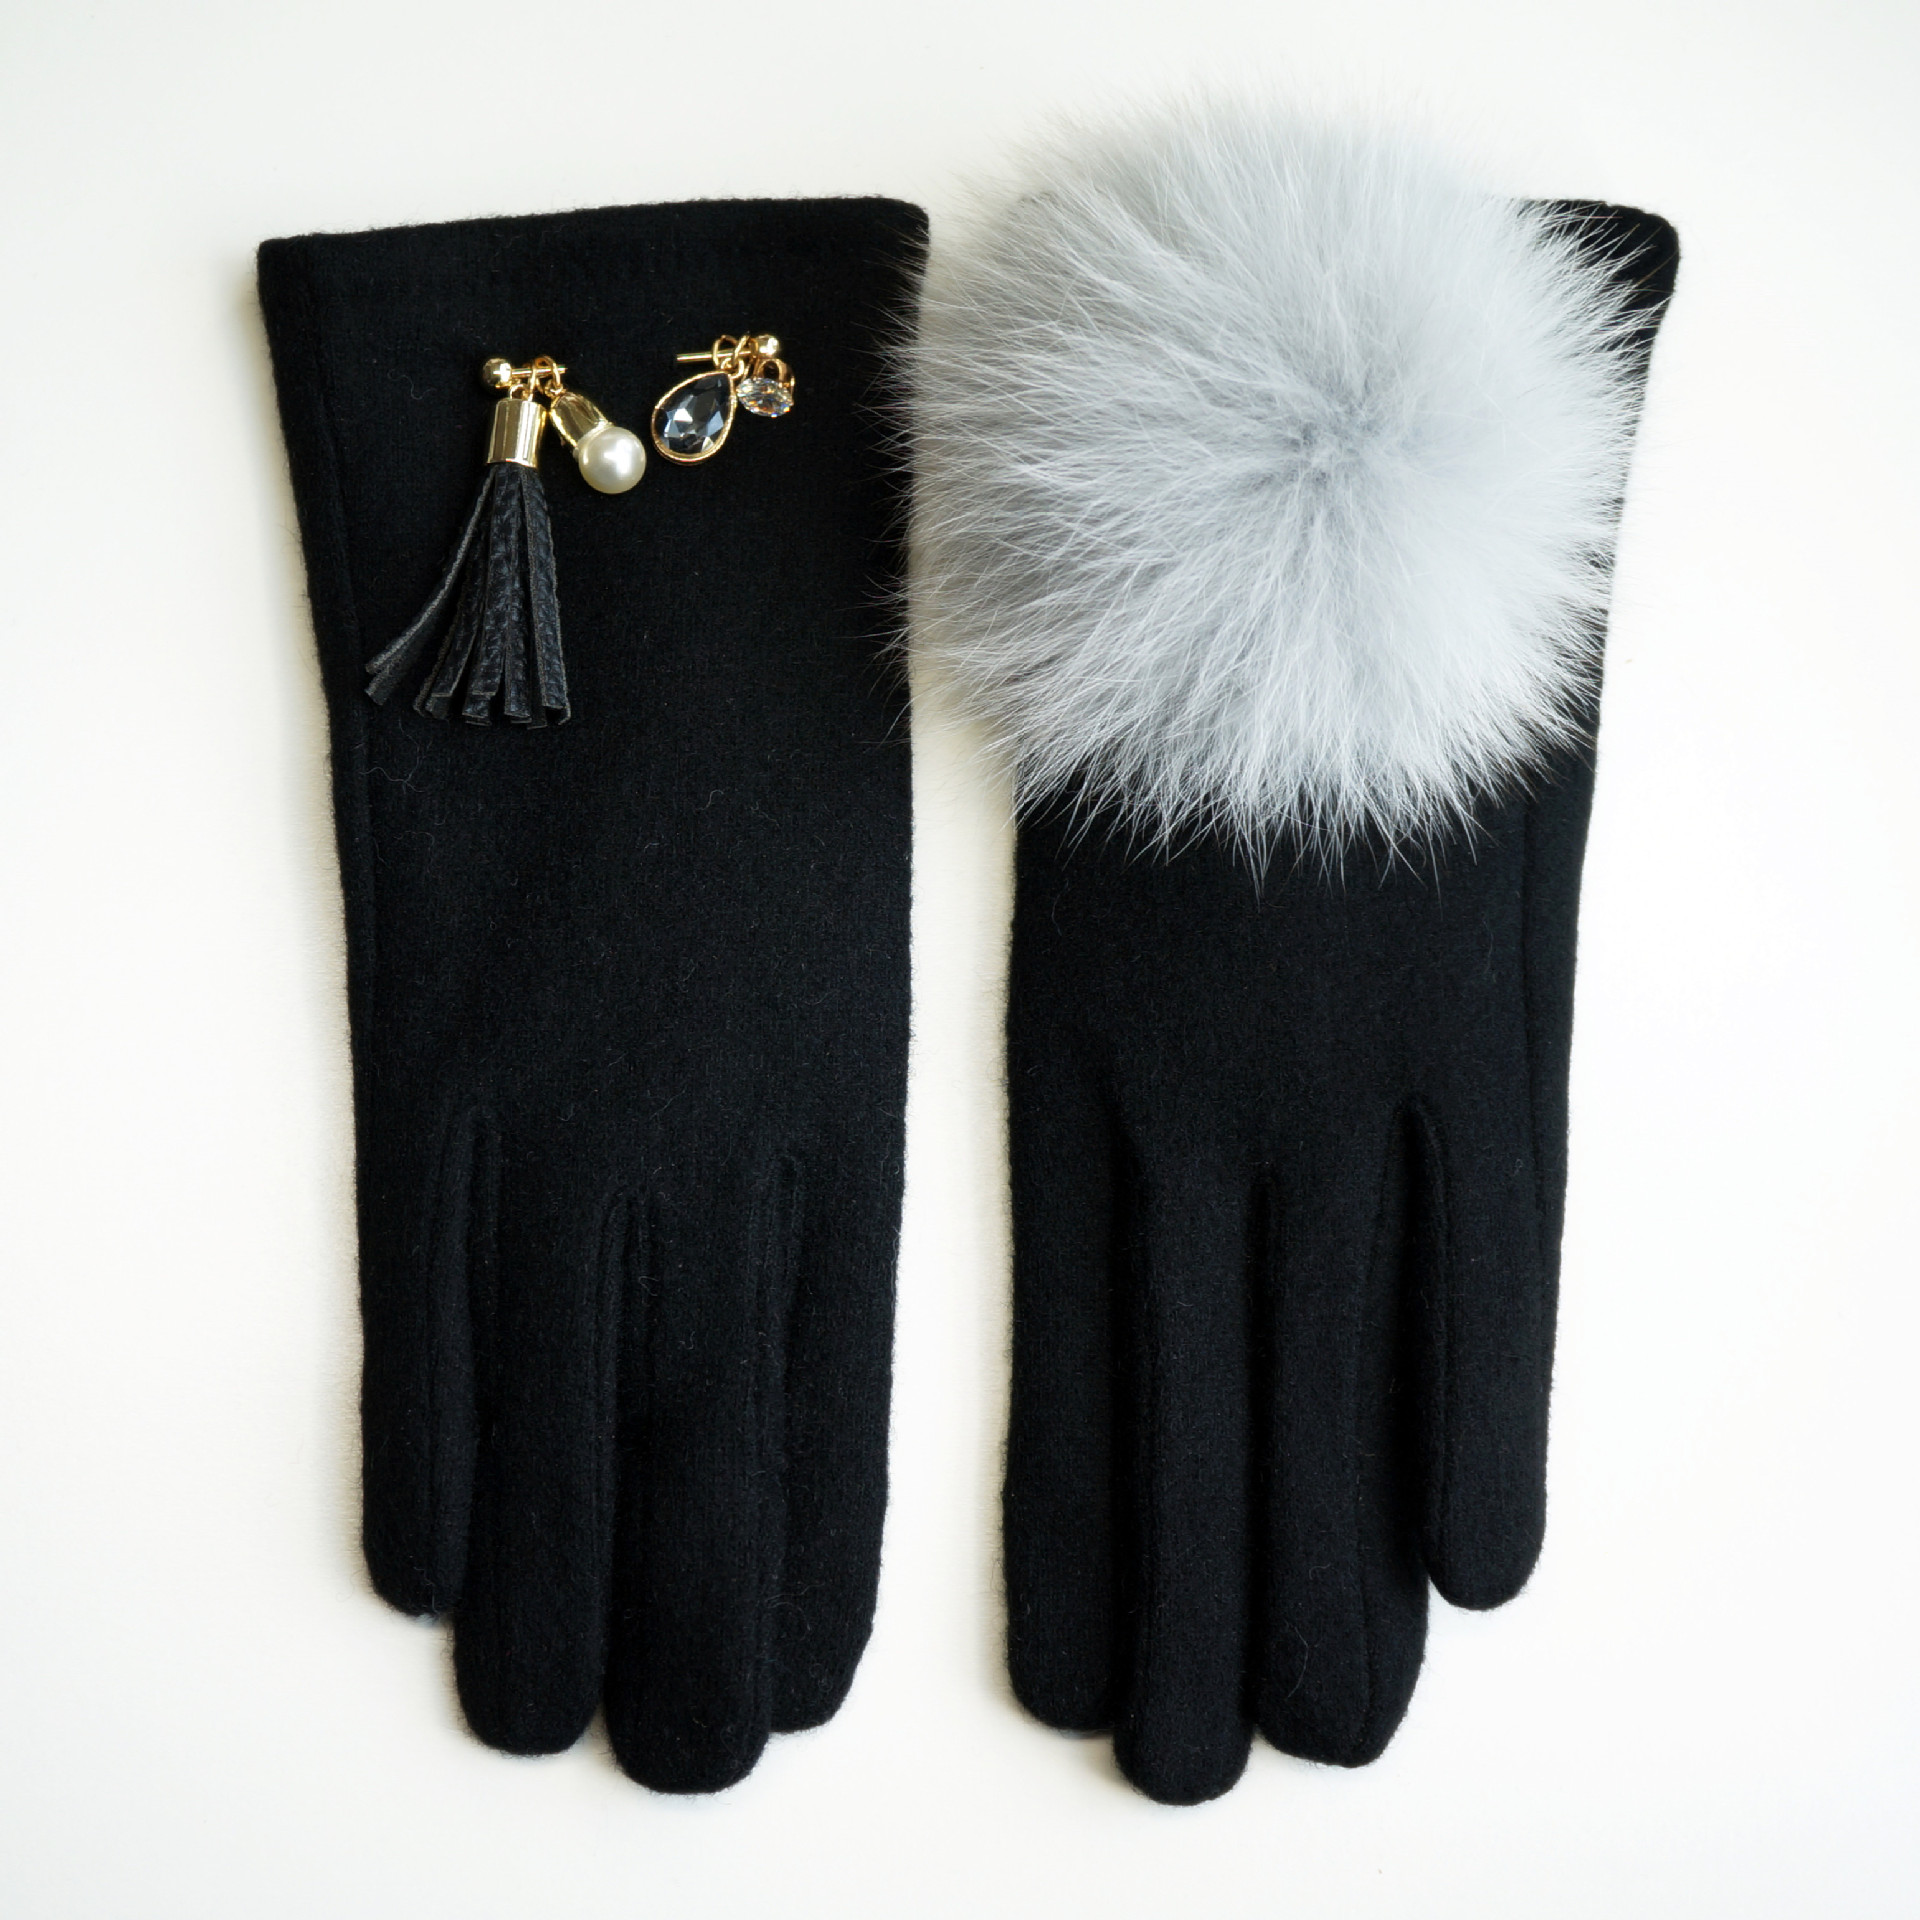 Hospitable Msd025 New Fashion Winter Accessories Tassel Fox Wool Cashmere Gloves With Fluffy Touch Screen Gloves For Winter Mittens Apparel Accessories